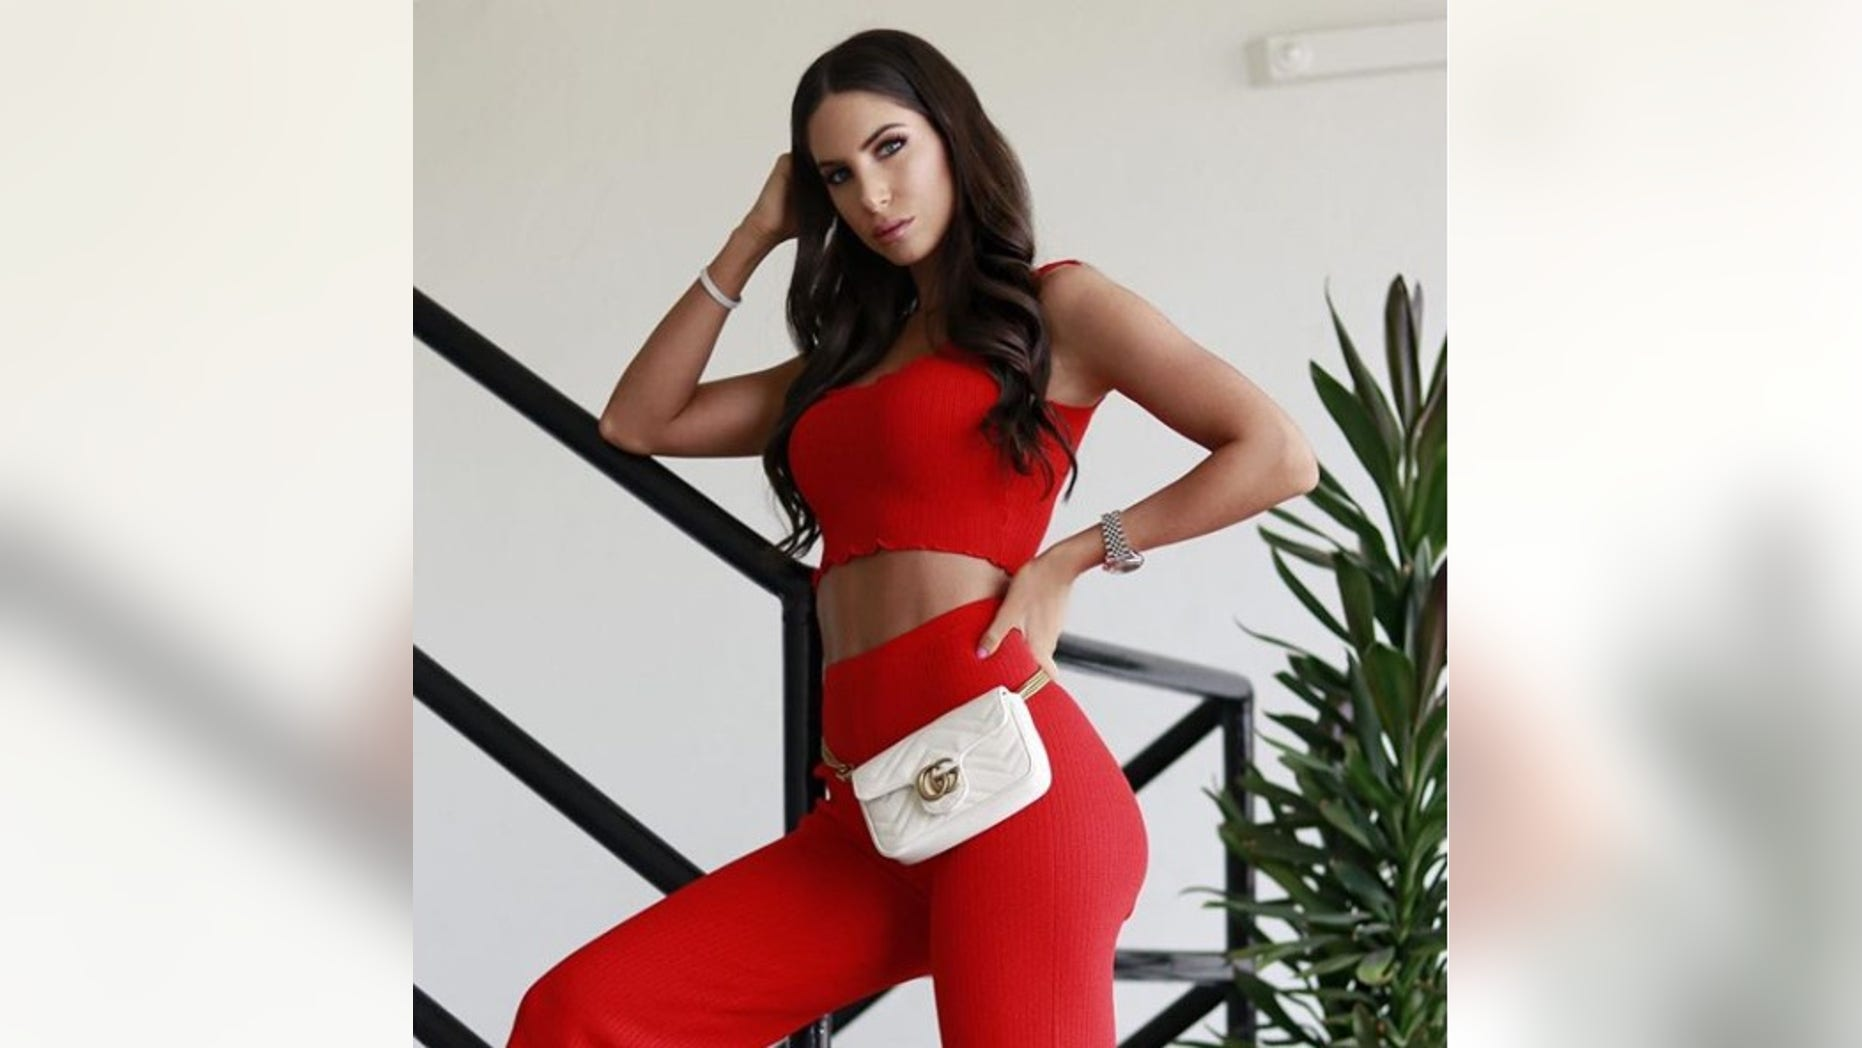 Instagram fitness model Jen Selter was removed from a New York-bound American Airlines flight on Saturday after she got into an argument with a flight attendant.